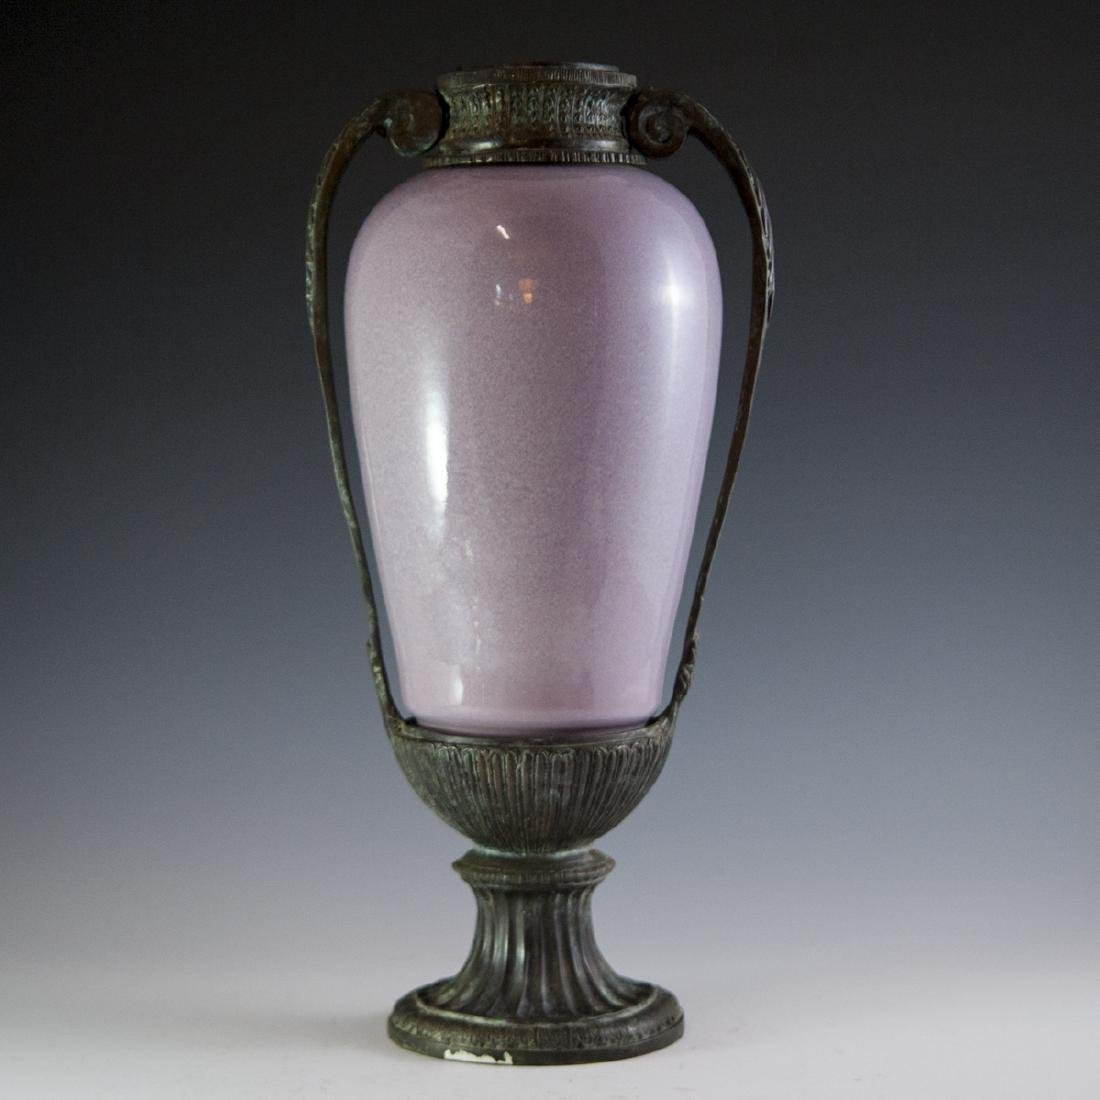 Decorative Porcelain & Bronze Vase